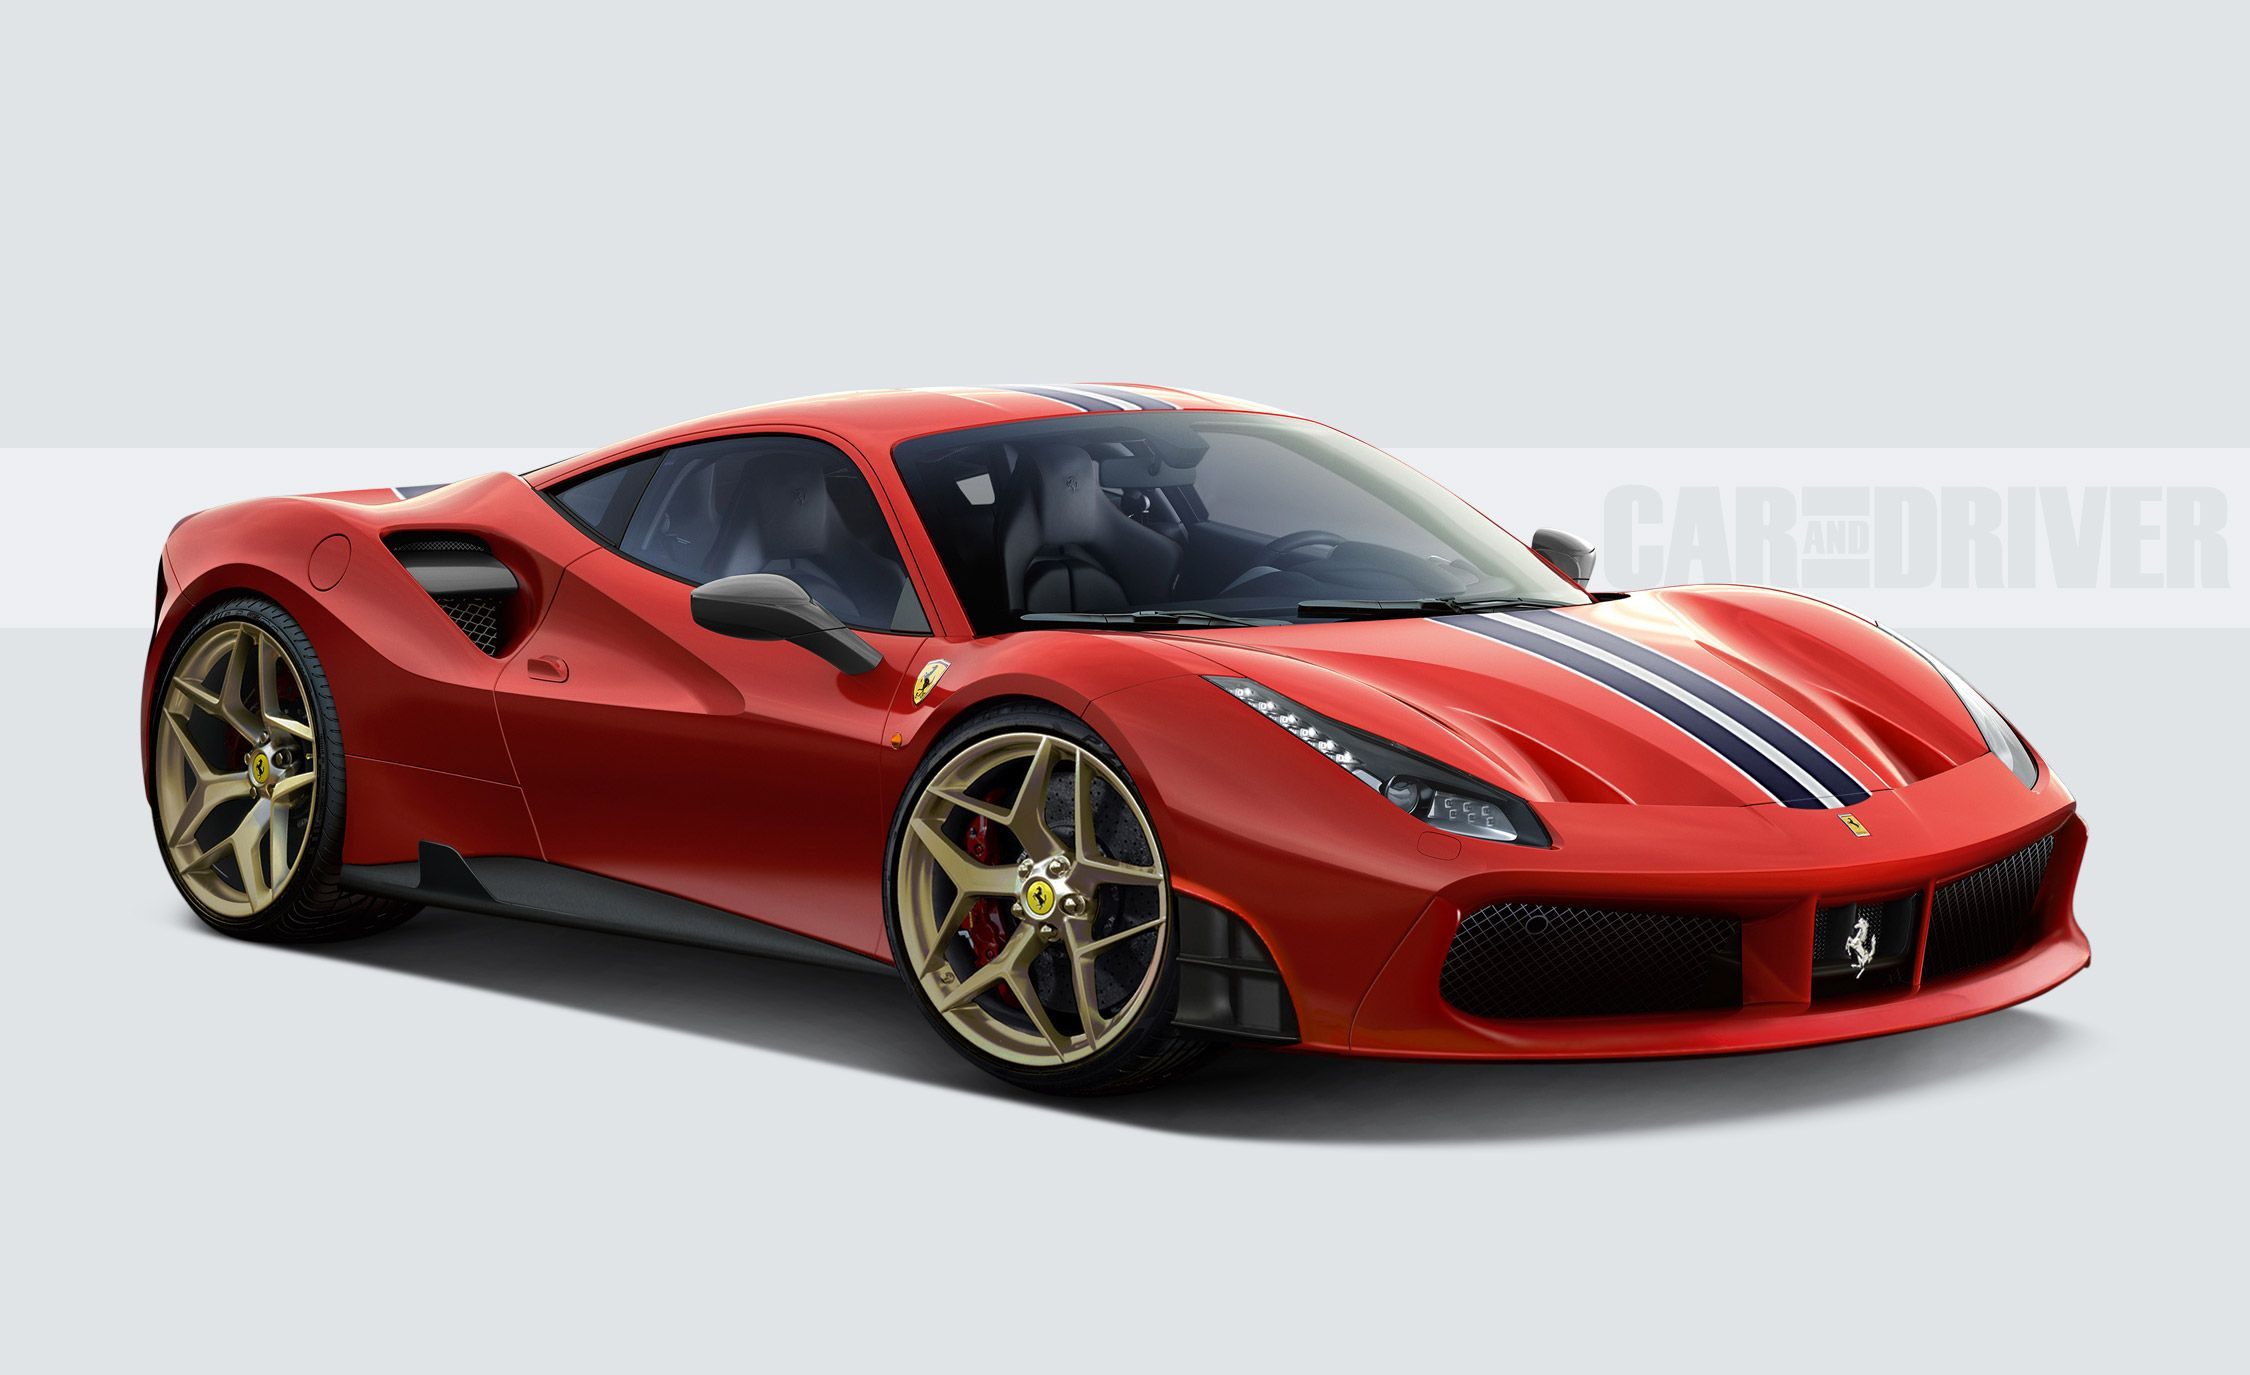 2018 Ferrari 488 Special Edition: Lighter and with a Larger Appetite for Apexes